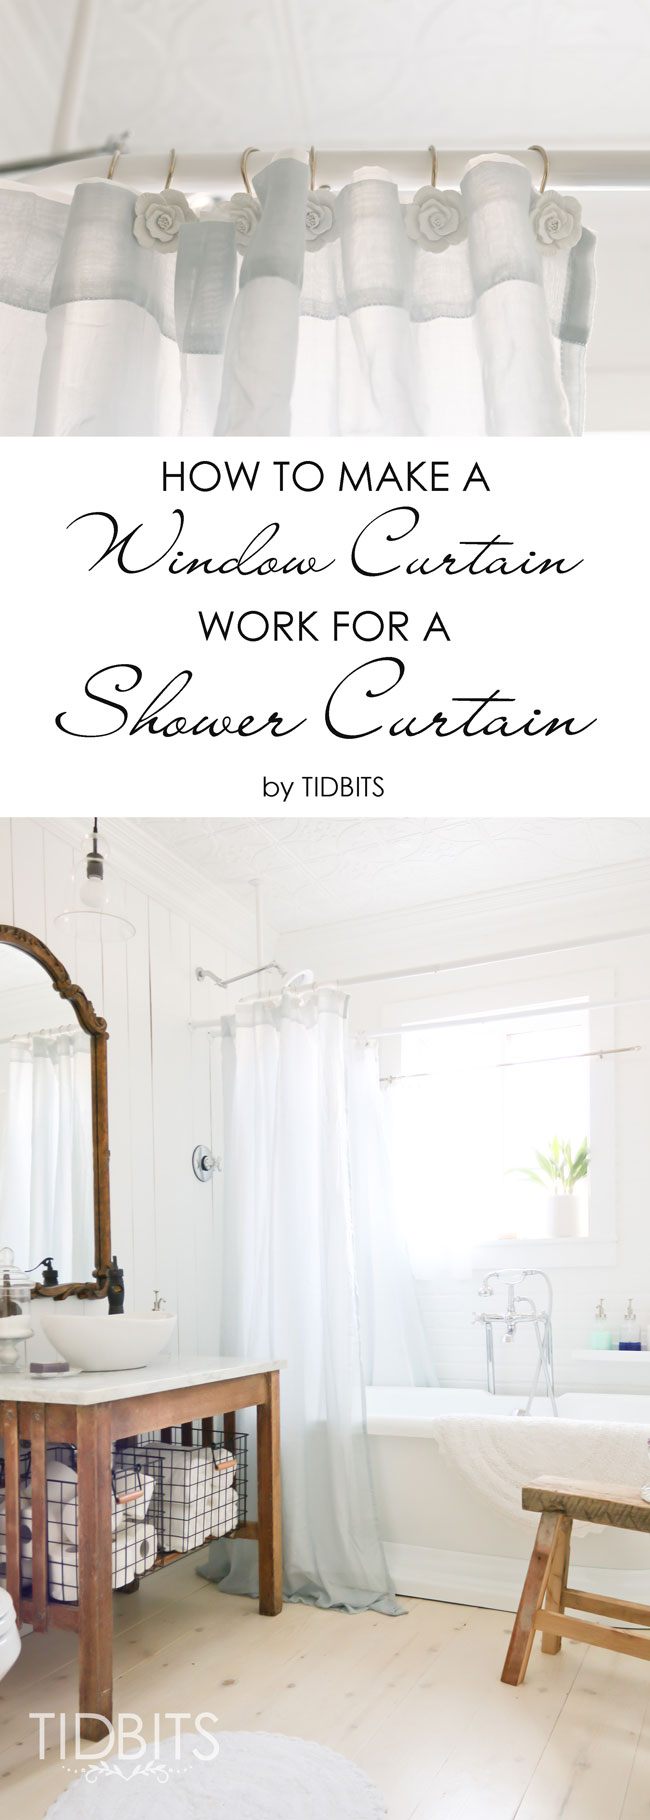 How To Make Shower Curtain How To Make A Window Curtain Work For A Shower Curtain Tidbits